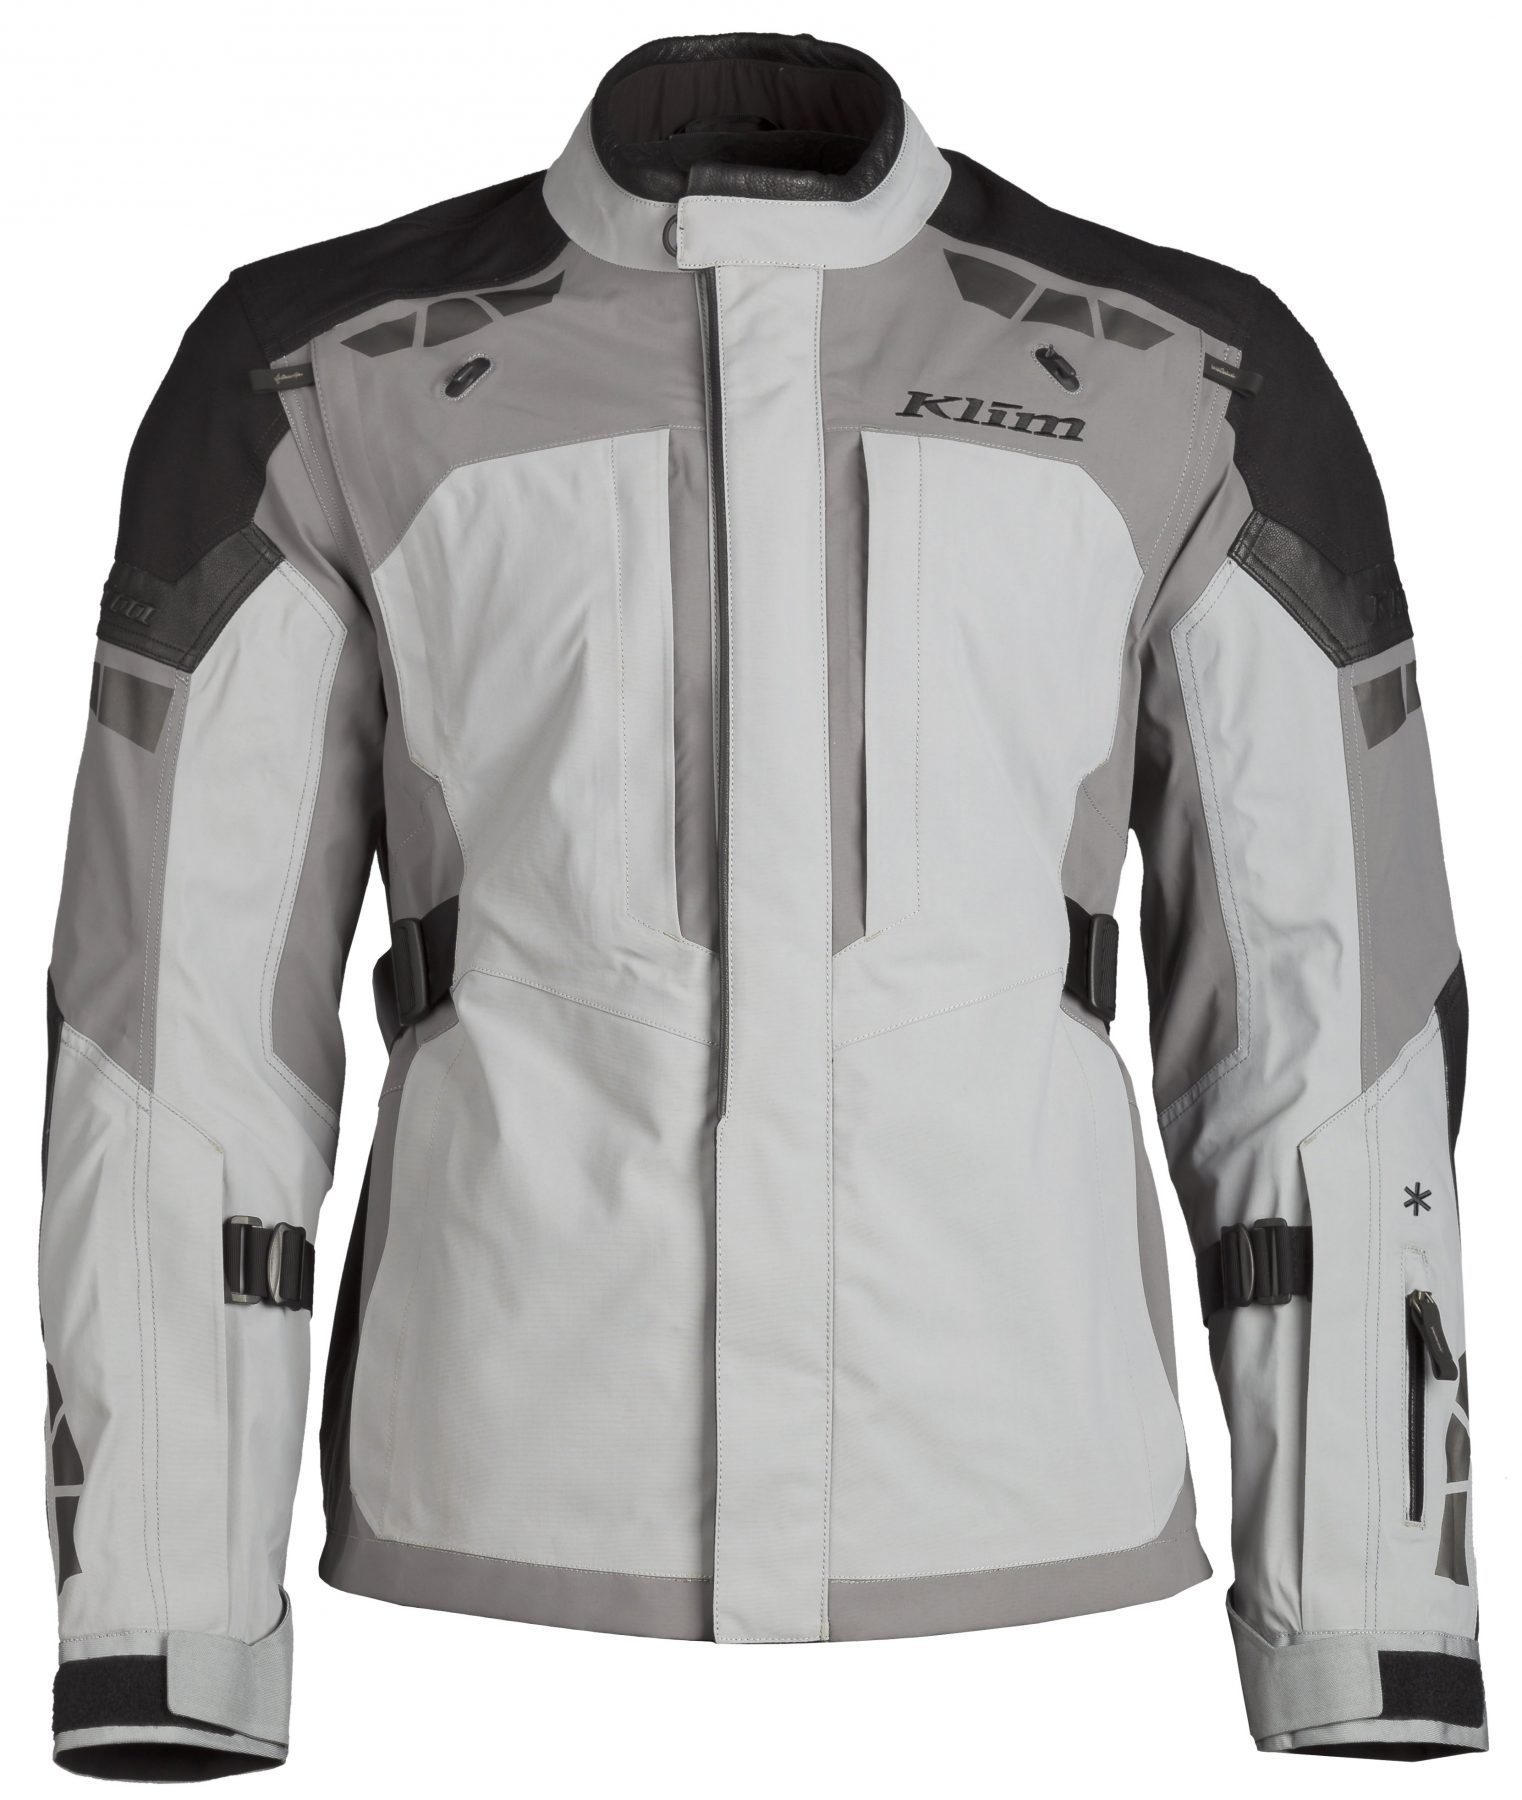 Latitude Jacket_5146-003_Gray_01